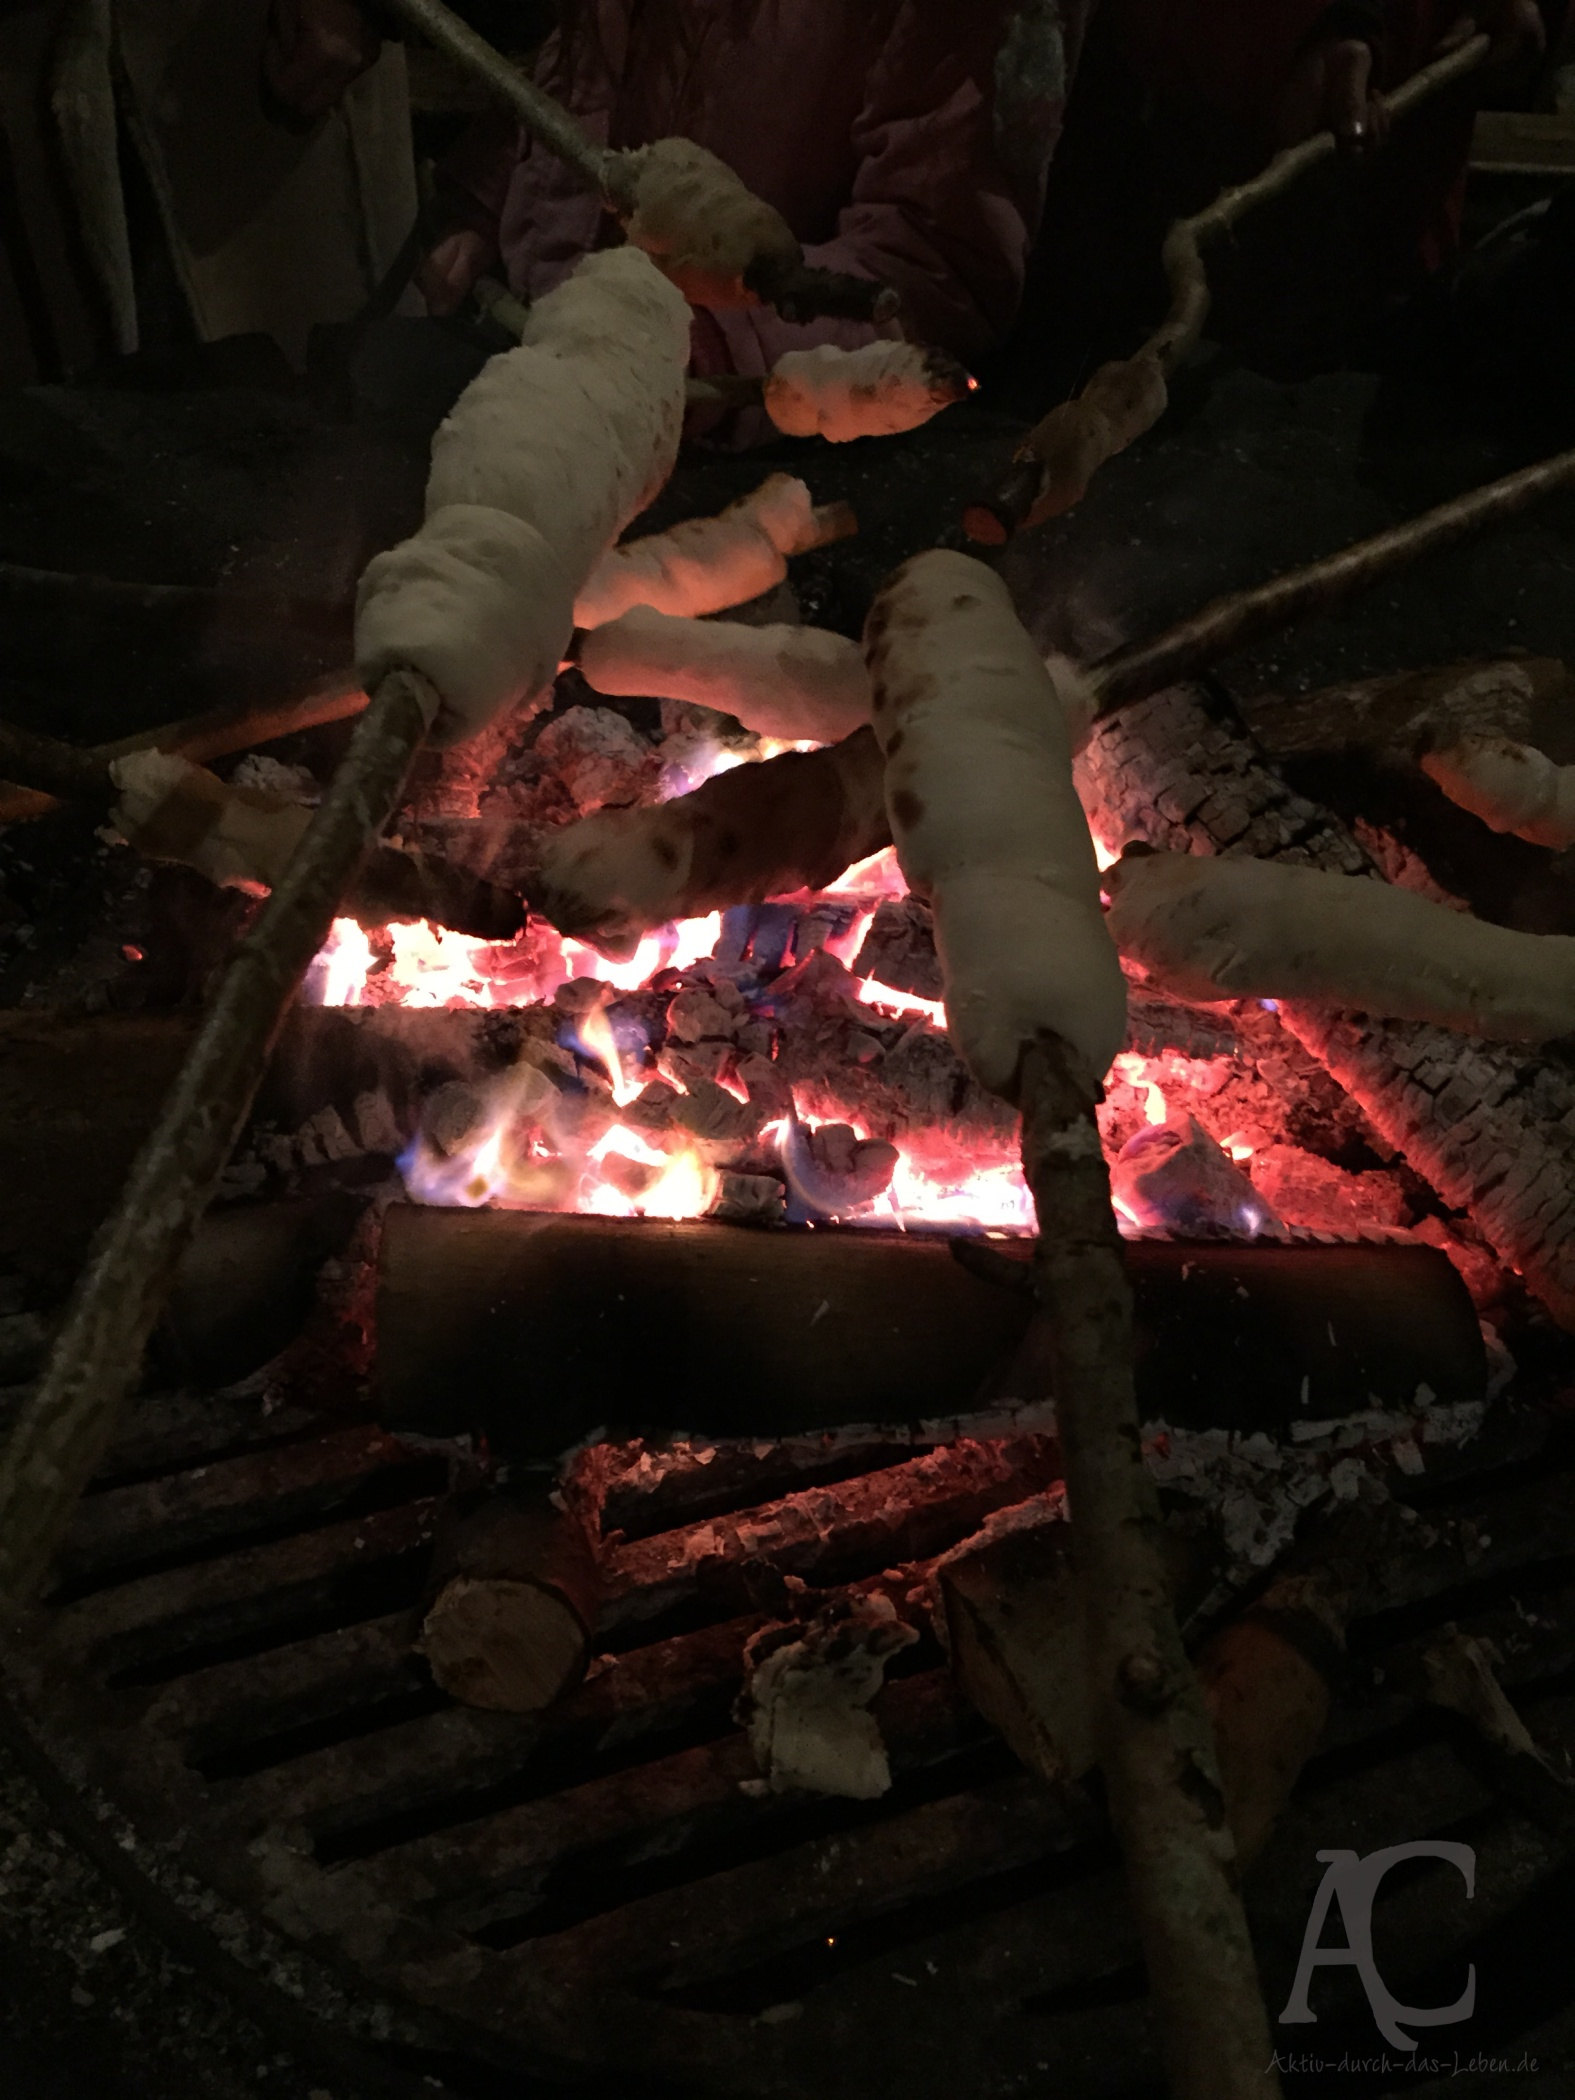 Abends Stockbrot am Lagerfeuer